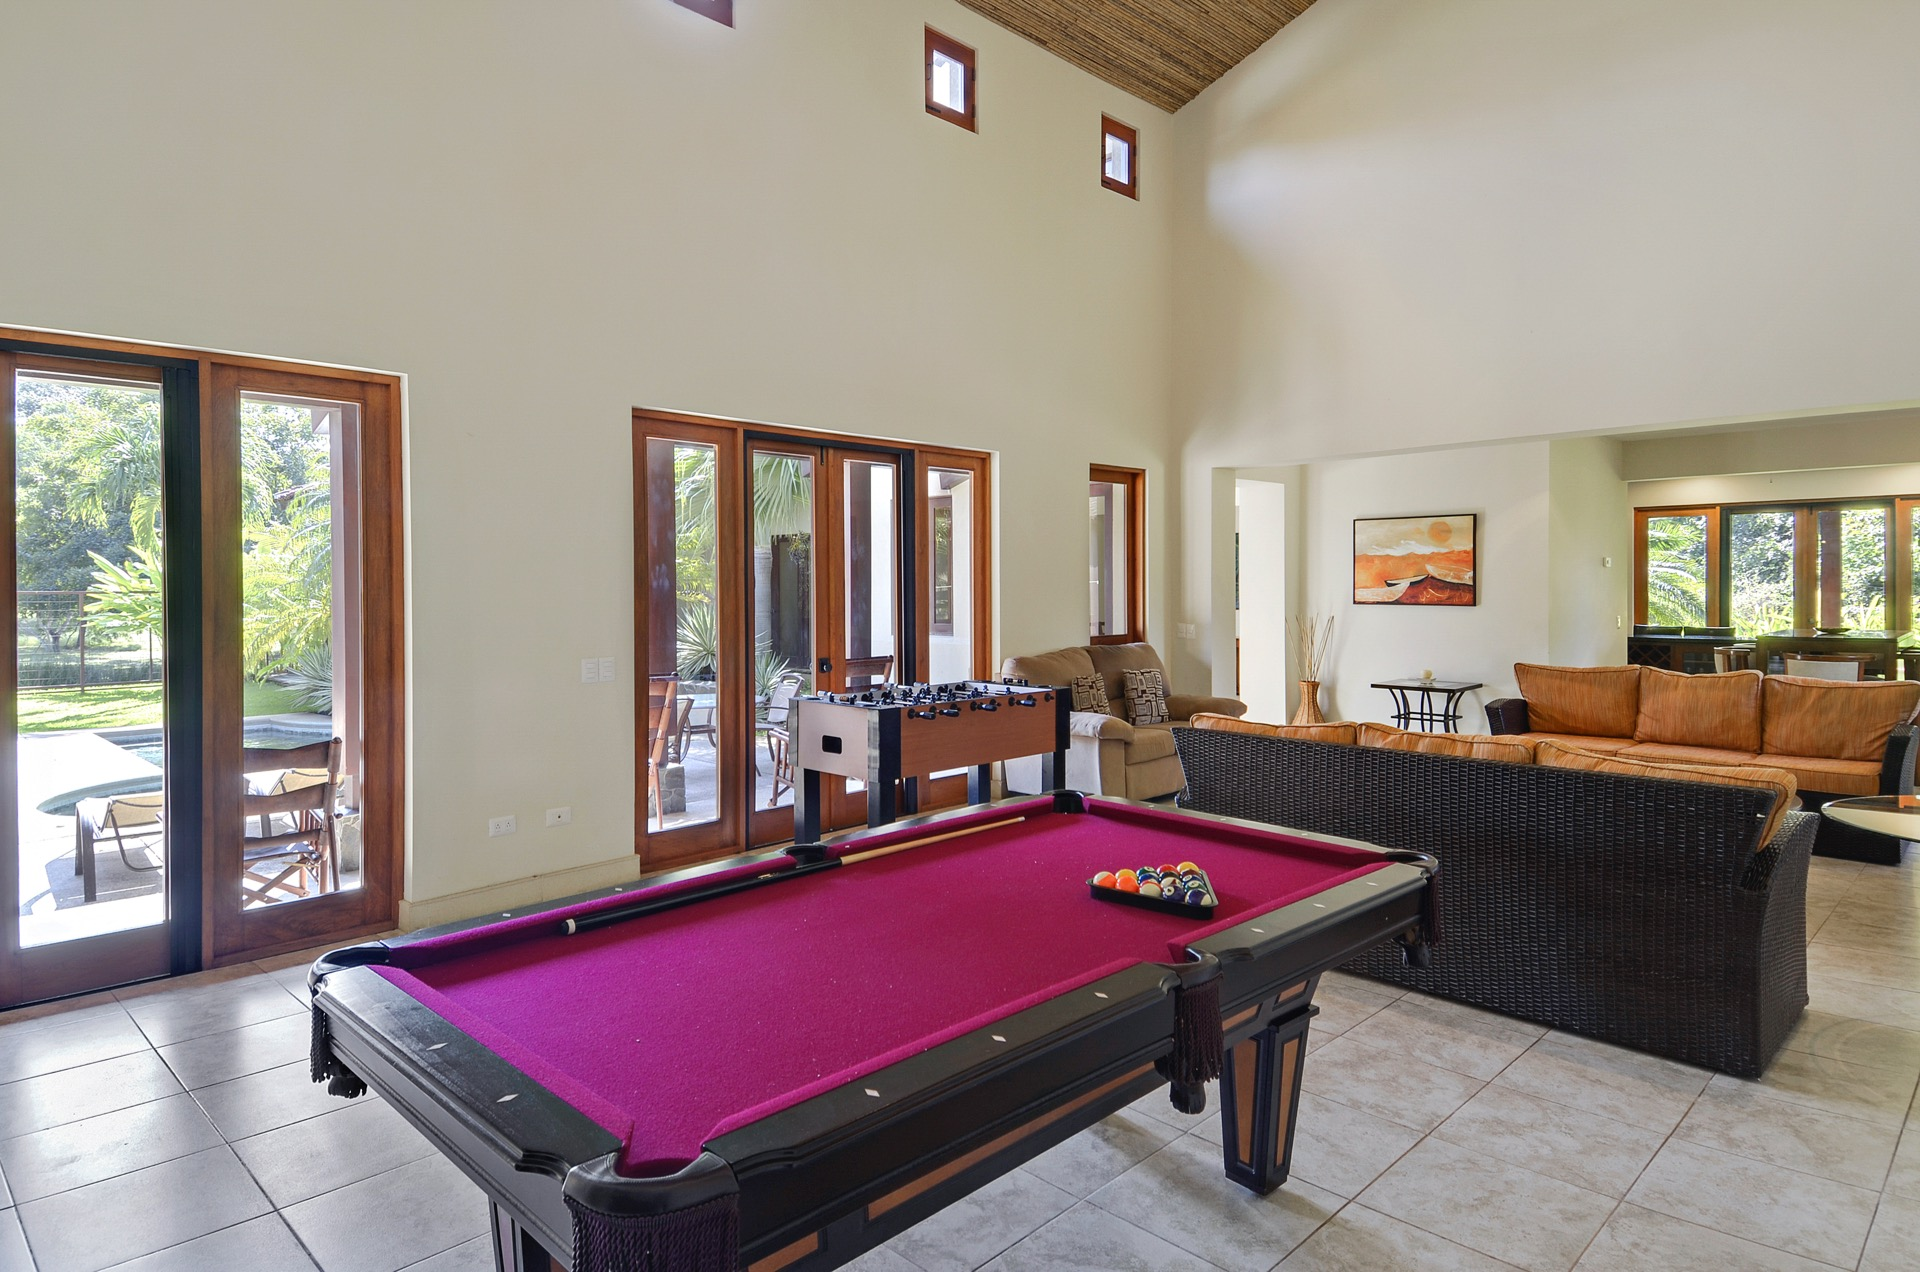 High ceilings and natural light shine our home